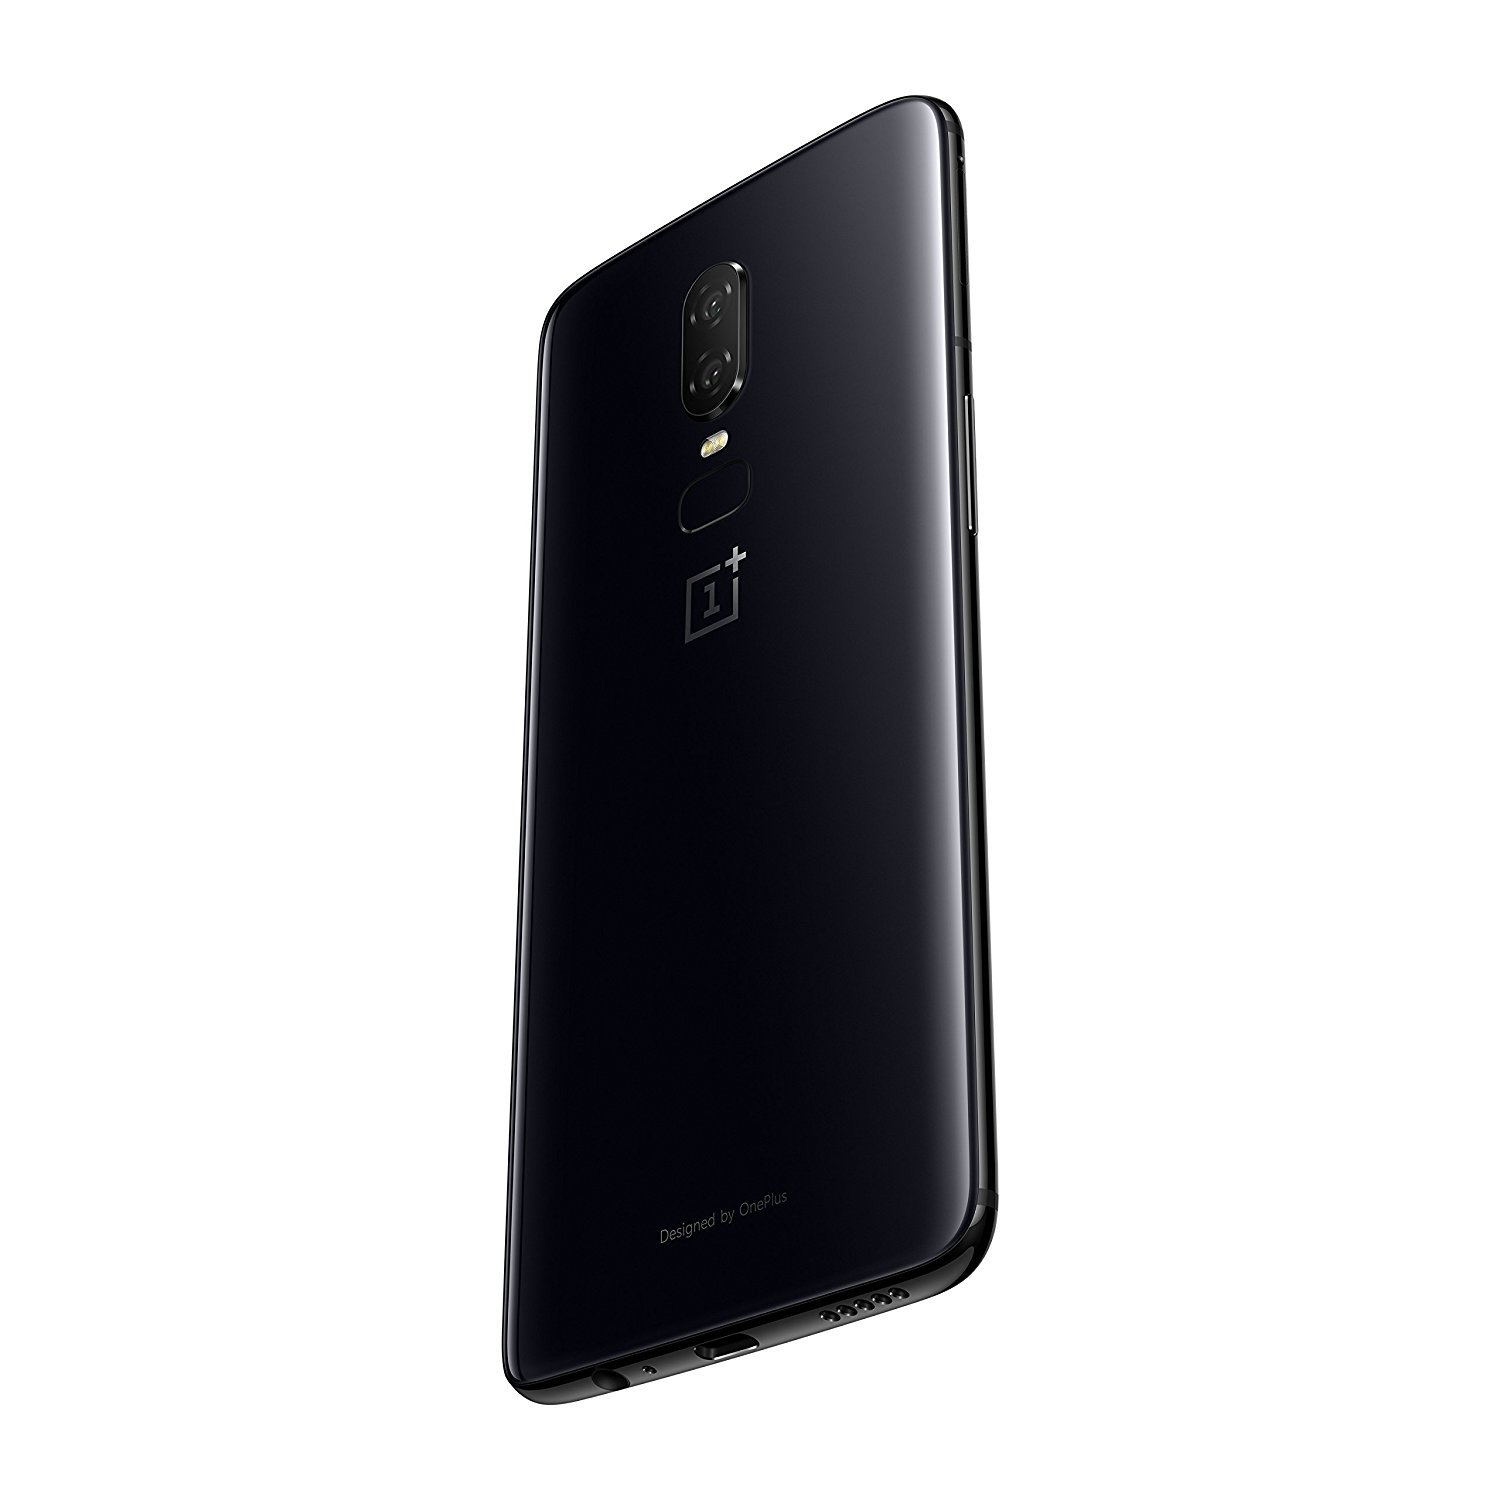 Amazon Listing reveals everything about the OnePlus 6 13